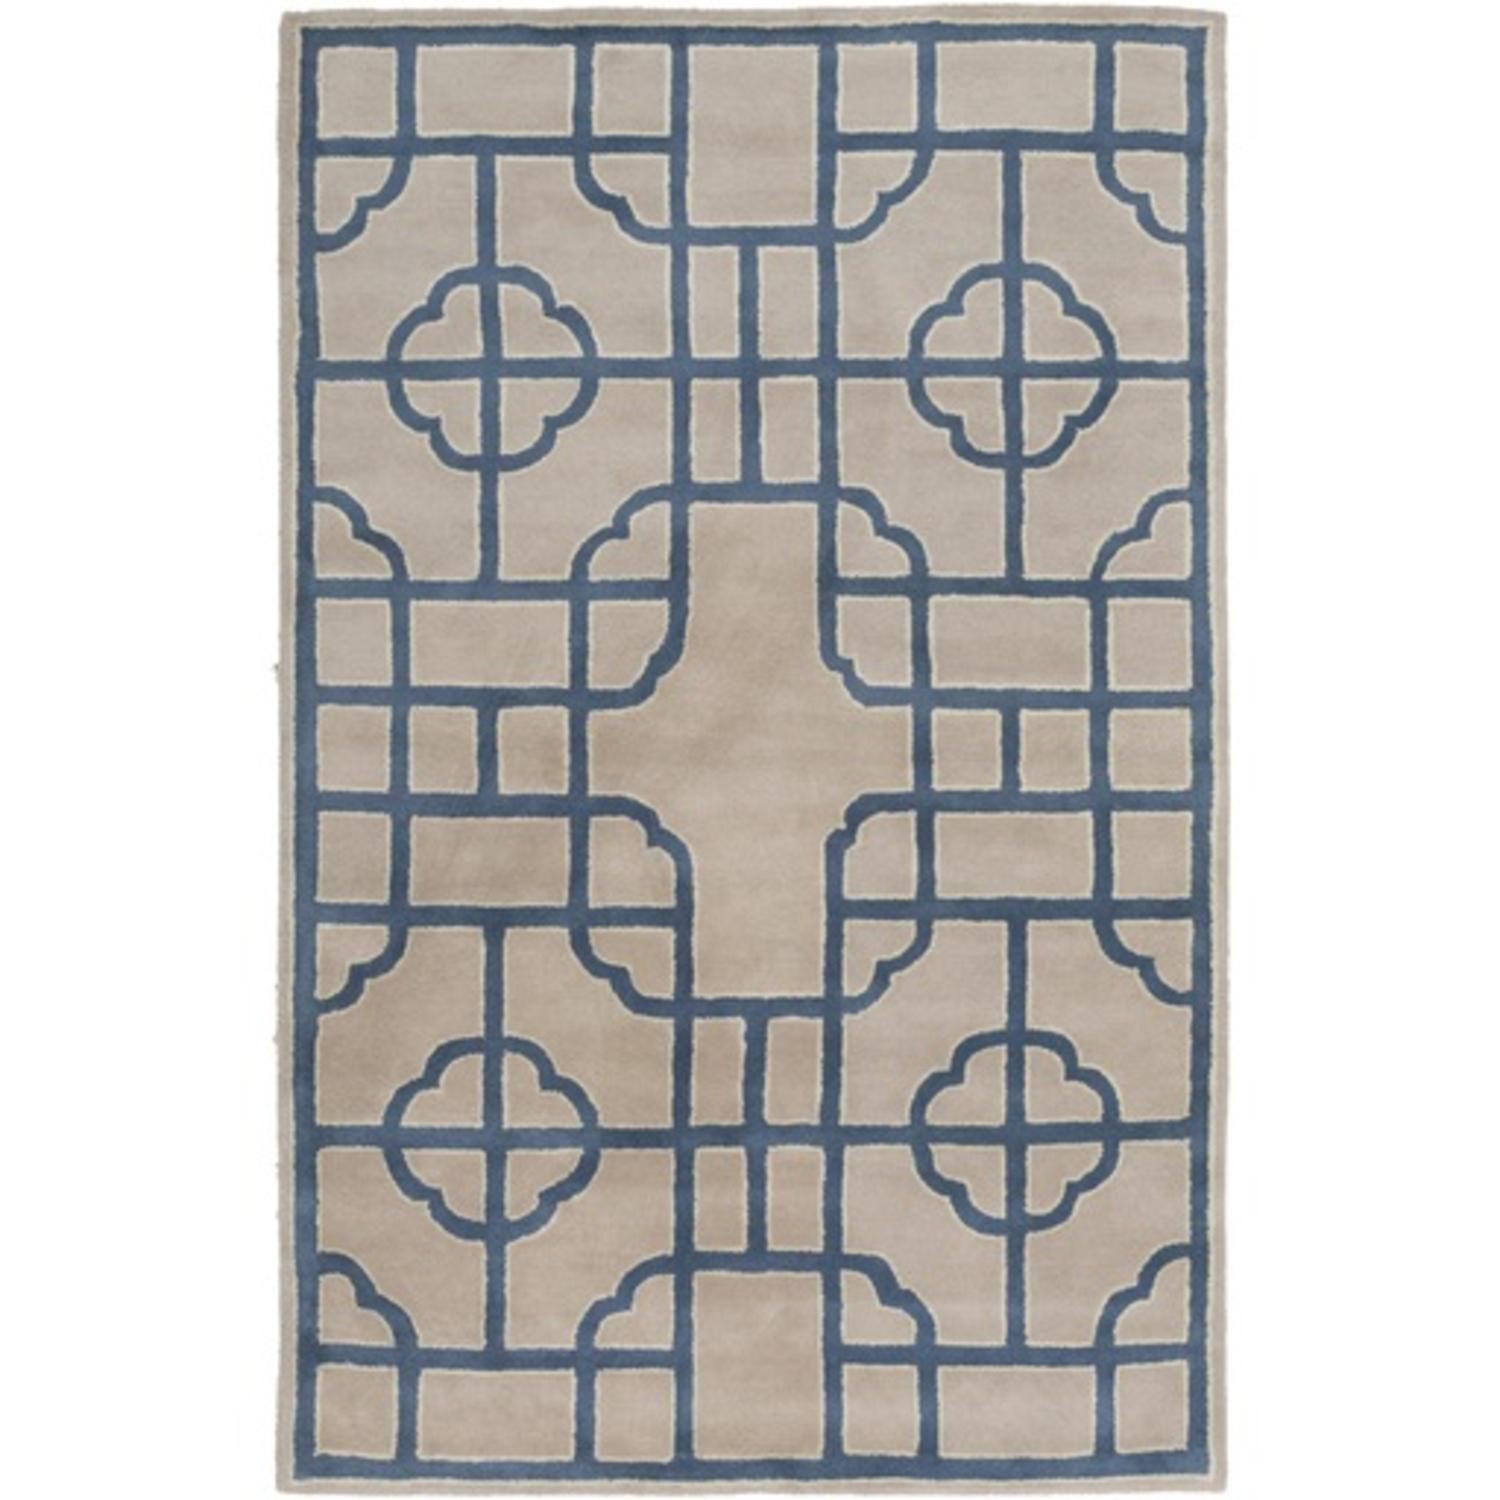 5' x 8' Mosaic Delight Sky Blue and Cream White Hand Tufted Area Throw Rug